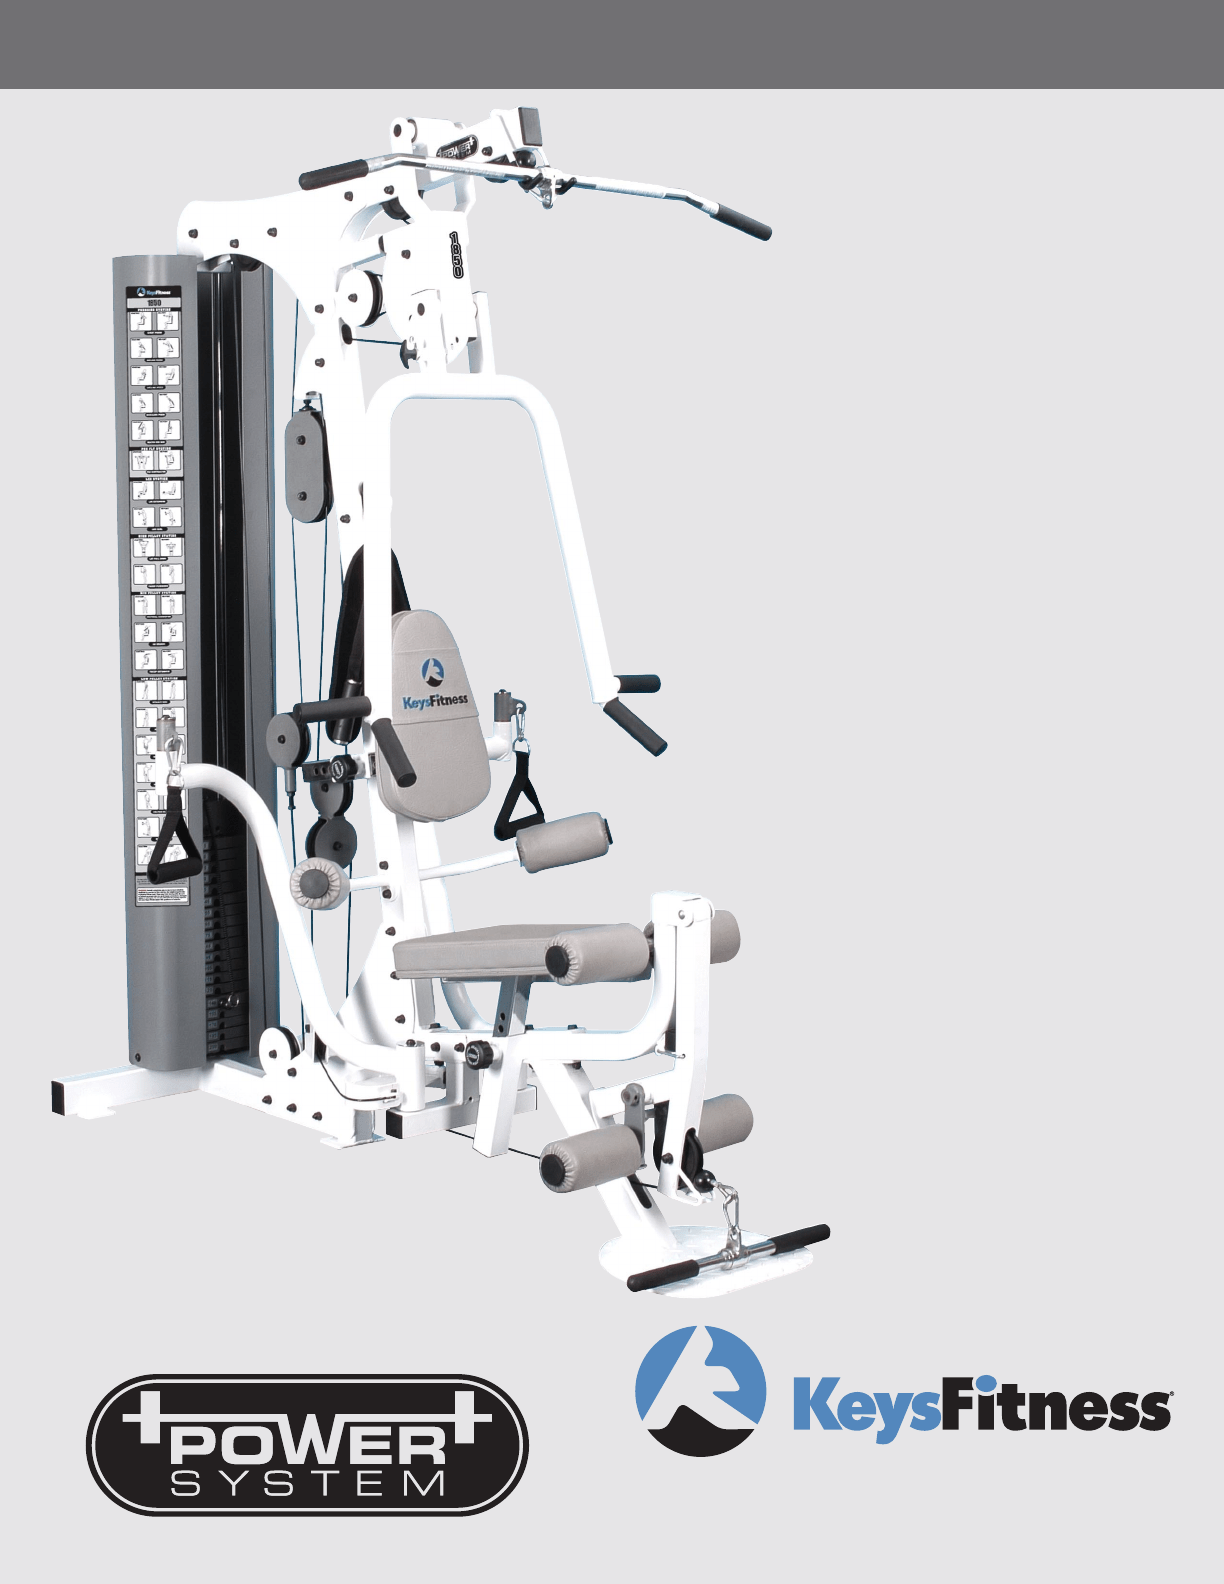 Keys Fitness Power System : fitness, power, system, Fitness, KPS-1850, Guide, ManualsOnline.com